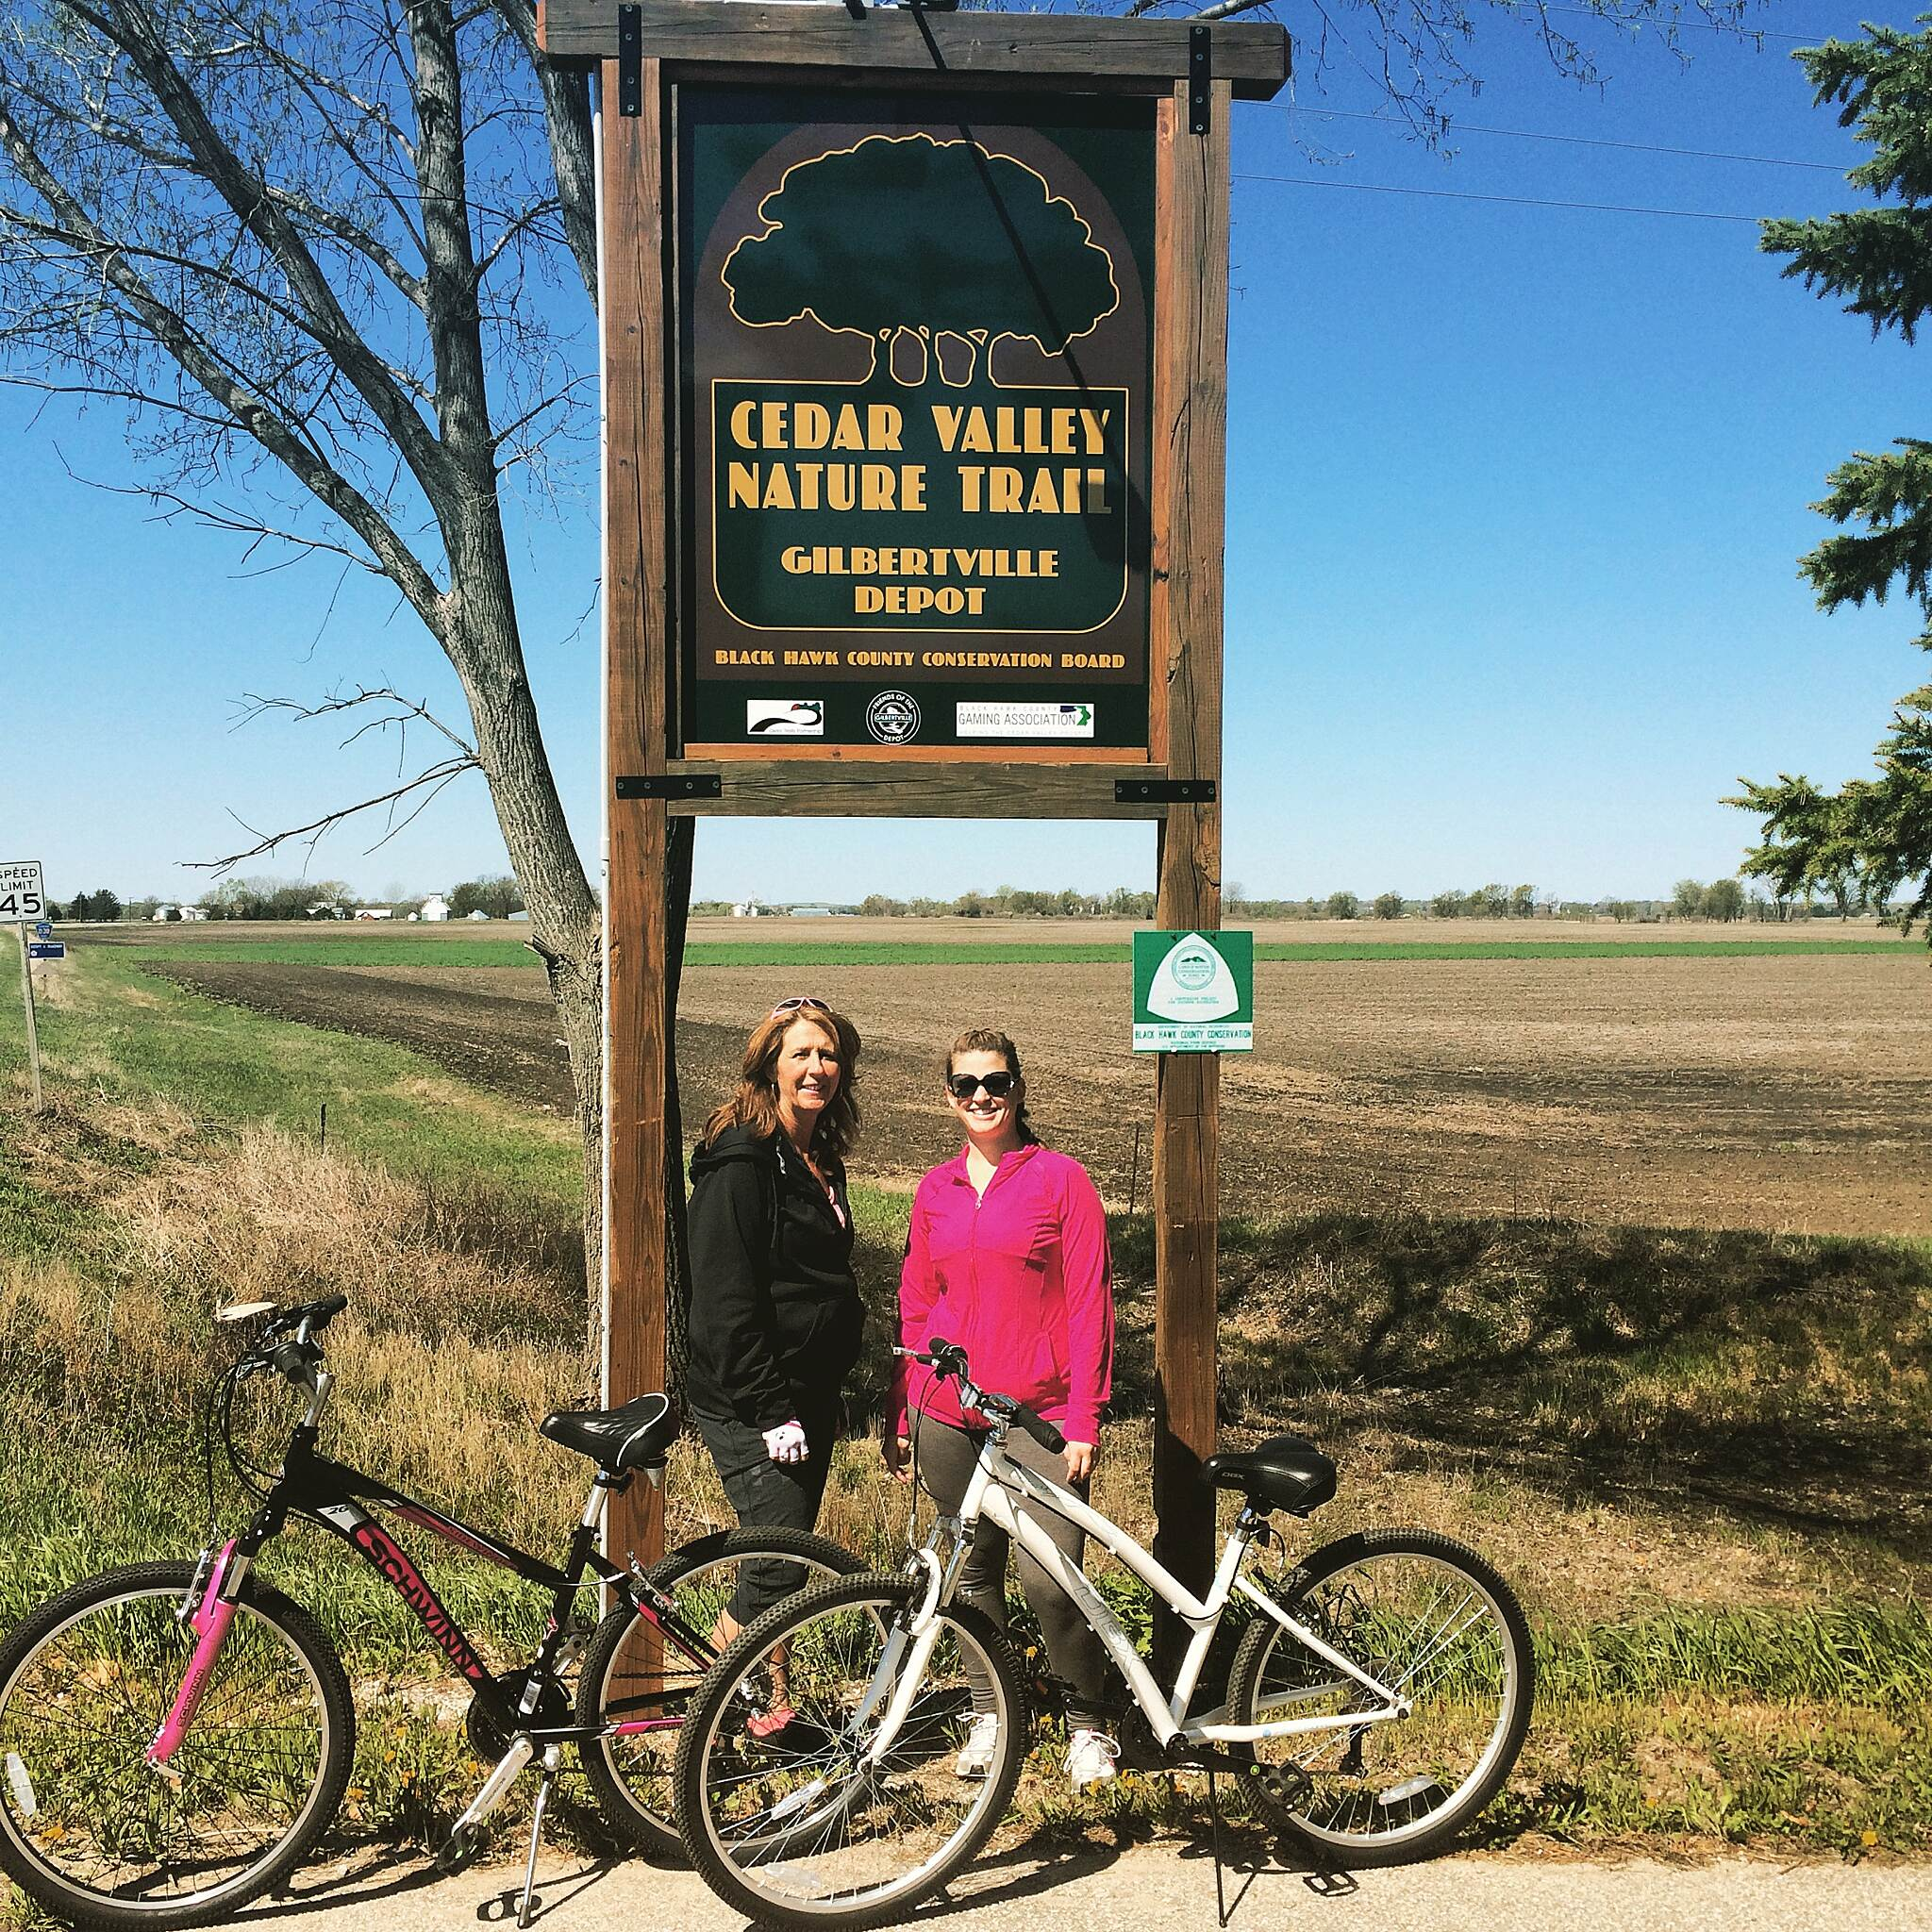 Cedar Valley Nature Trail Sunday Morning Ride Rise and Shine! #bikeride #cedarvalleynaturetrail